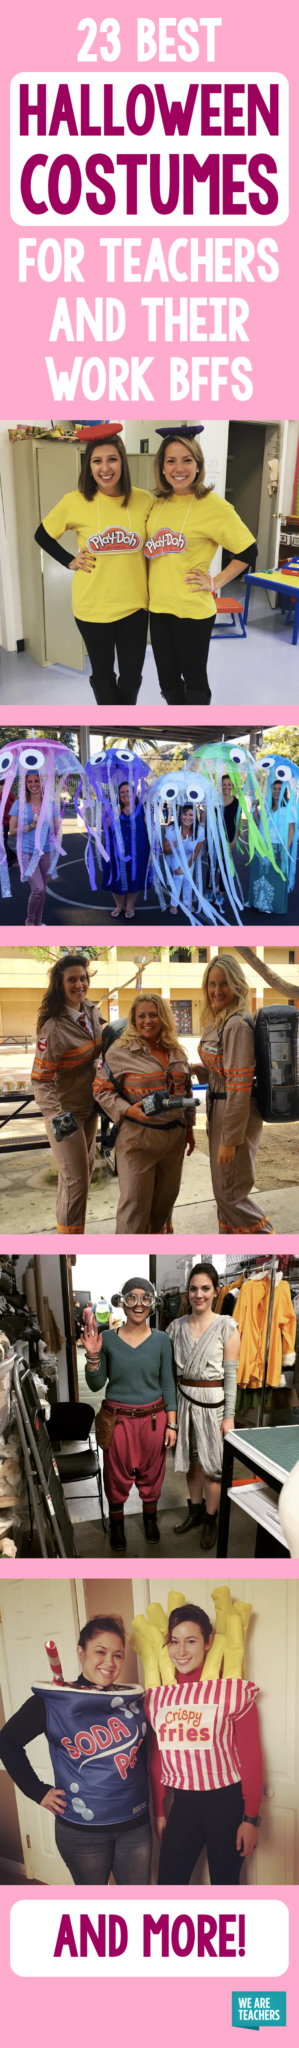 What group or partner Halloween costumes for teachers have you spotted in the wild? Please share your ideas in the comments!  sc 1 st  WeAreTeachers & 23 Best Teacher Halloween Costumes (for Groups u0026 Partners)